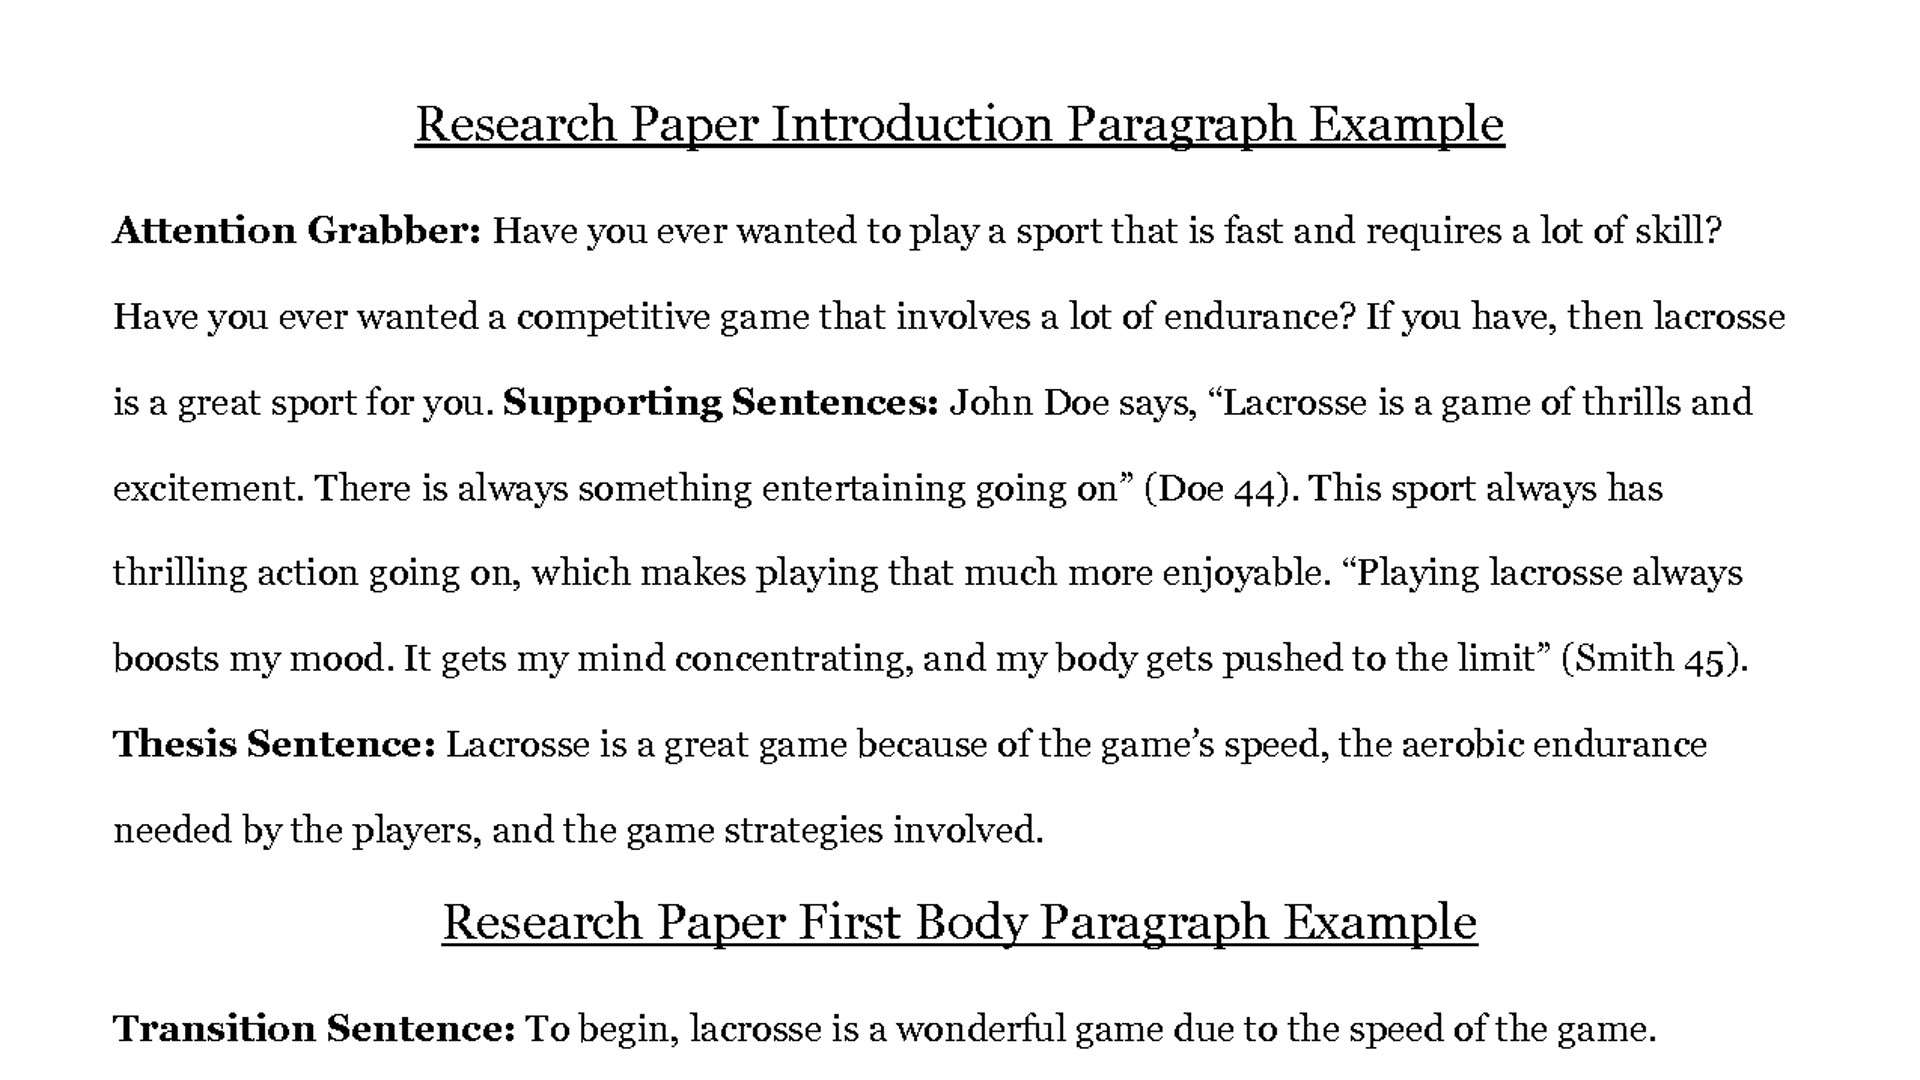 024 Research Paper Marvellous Introduction Example Conclusion For Essays Format Good Essay Conclusions Examples Template 1920x1080 Of Wonderful A About Bullying Psychology Scientific 1920